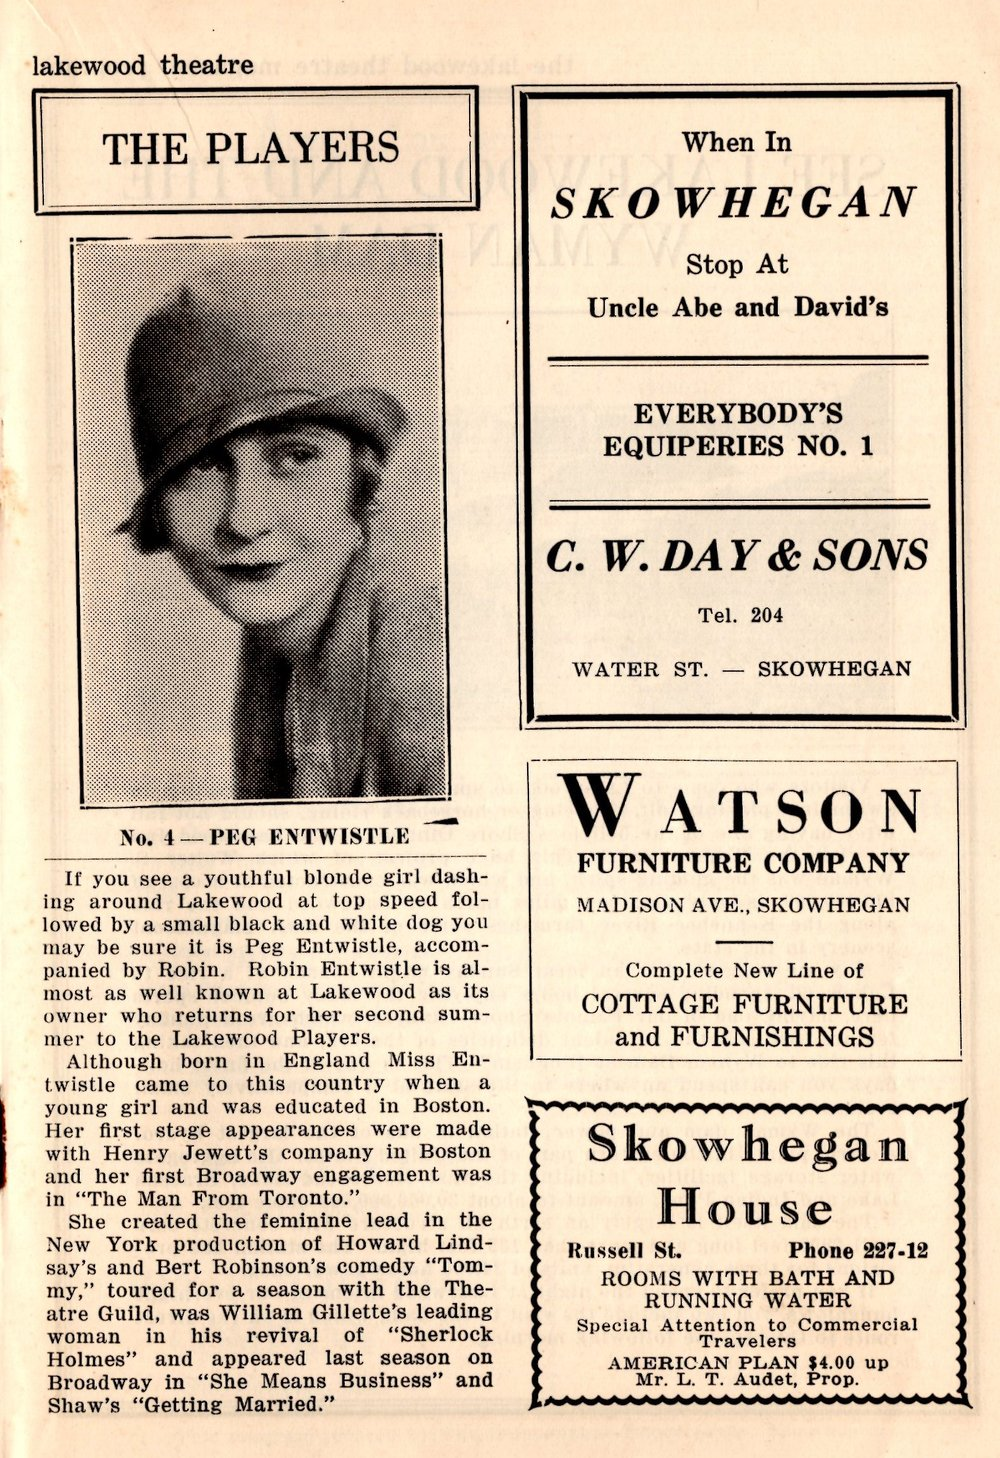 """A picture of Peg in a 1931 playbill, describing her """"dashing around Lakewood at top speed"""" with her beloved dog Robin."""